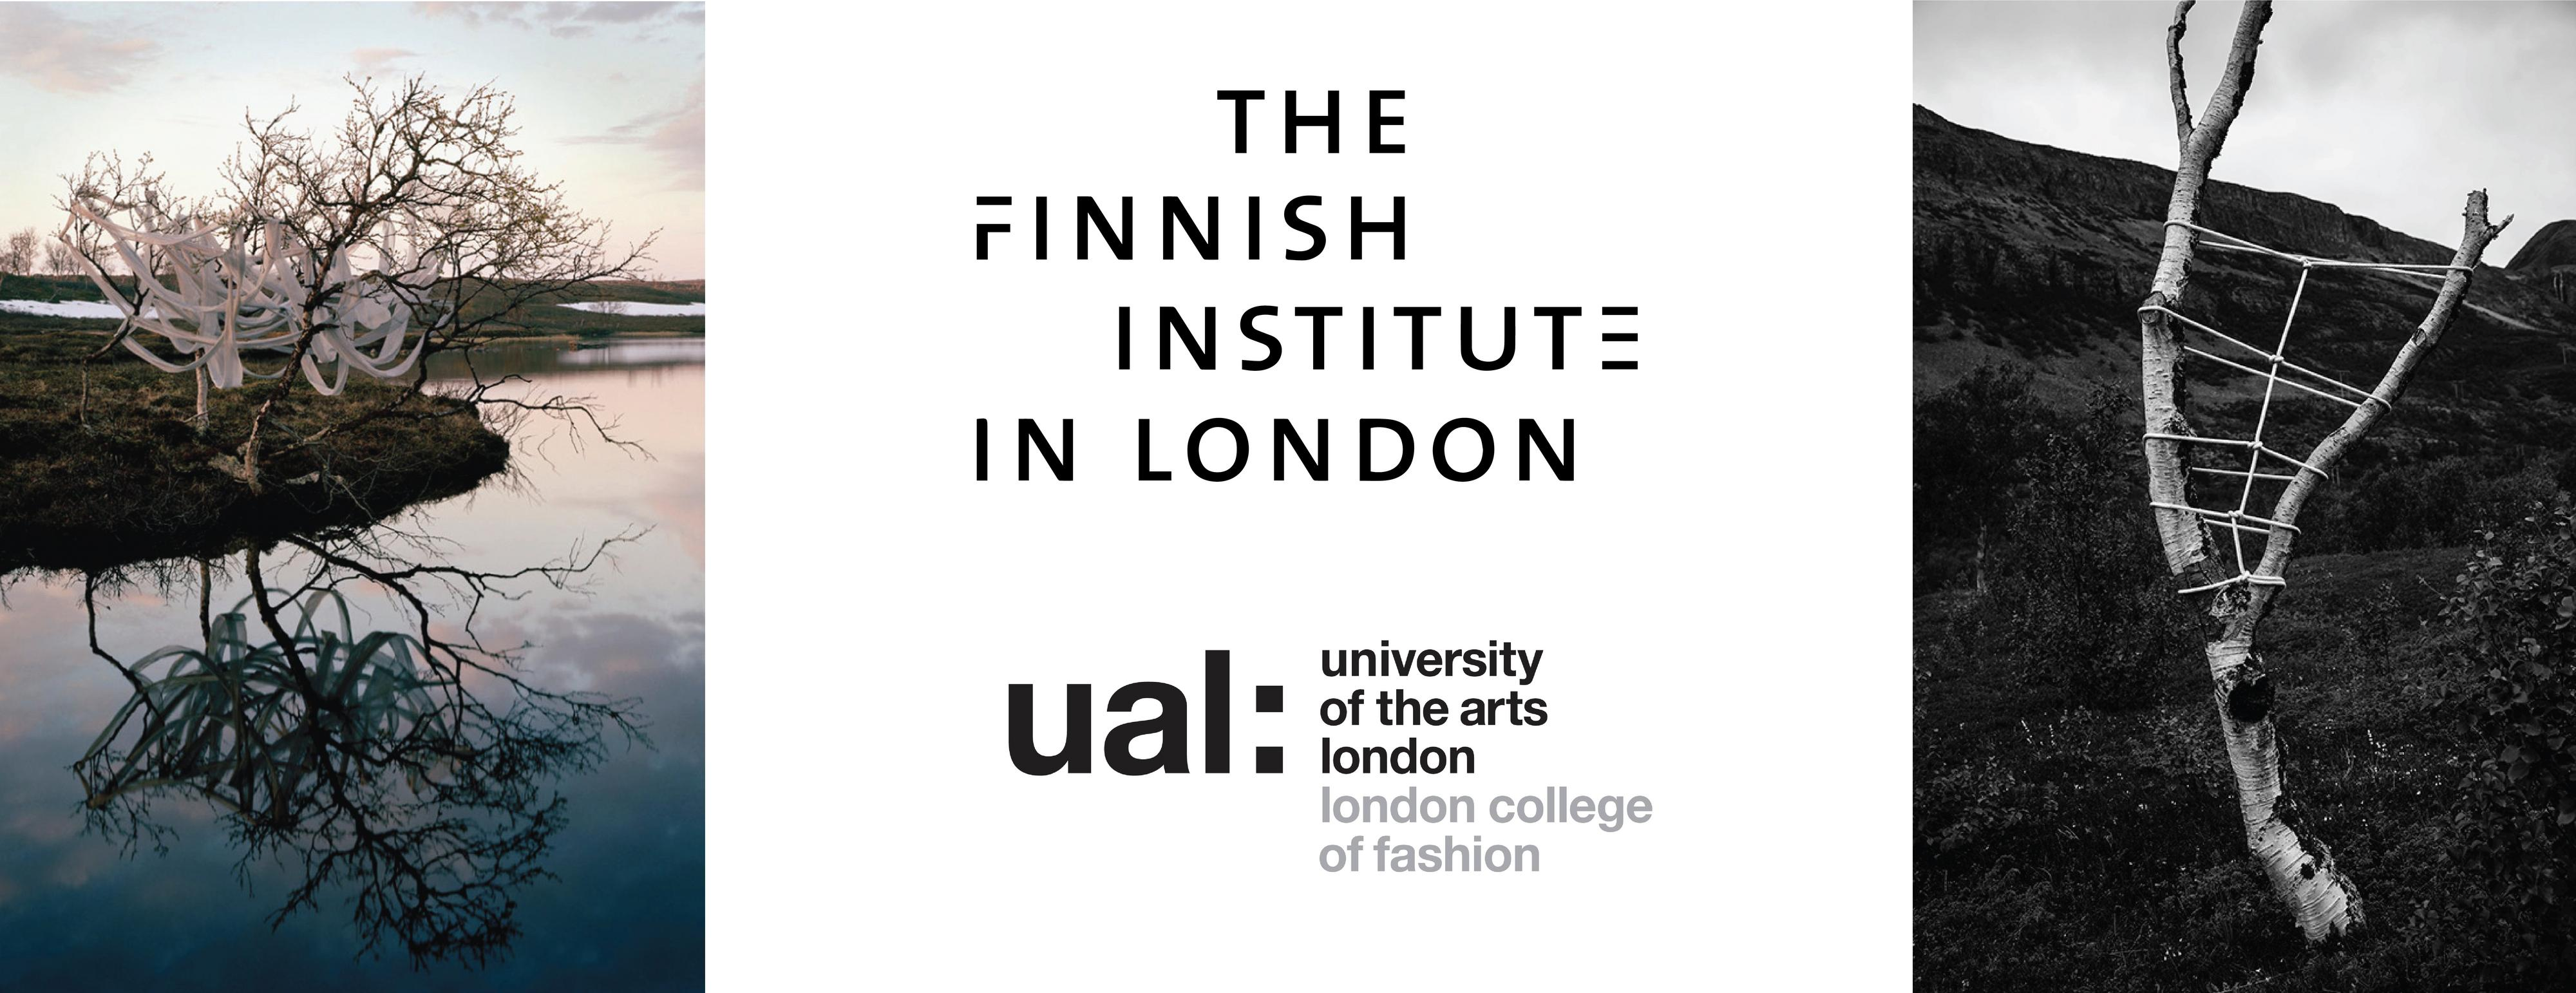 finnish institute london